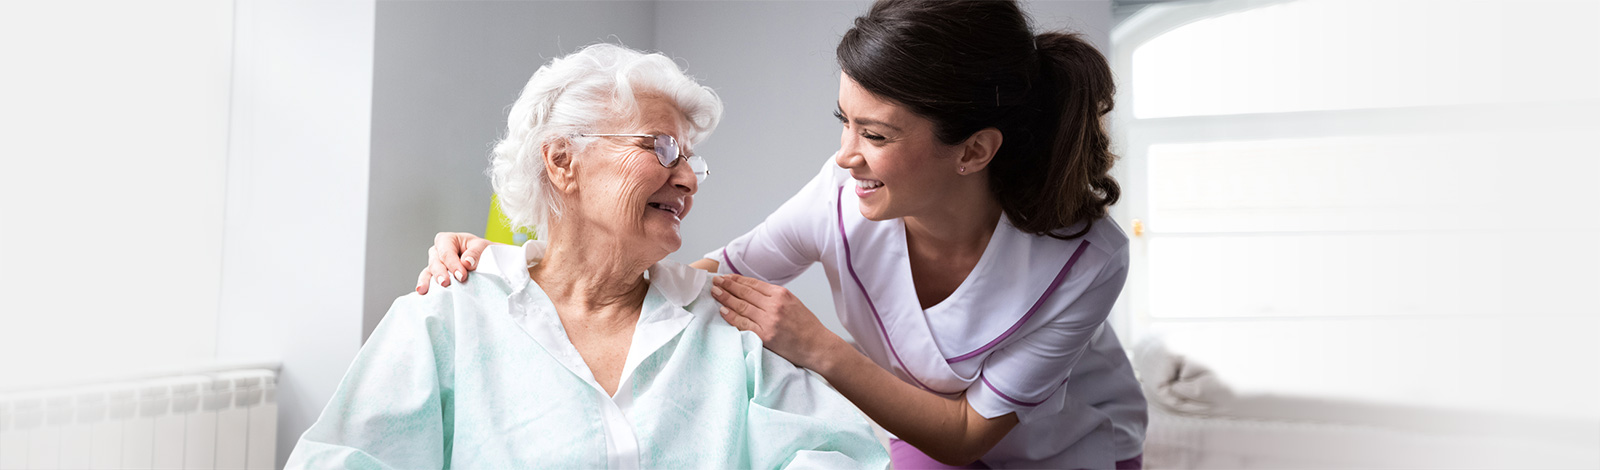 A nurse smiling at a patient.